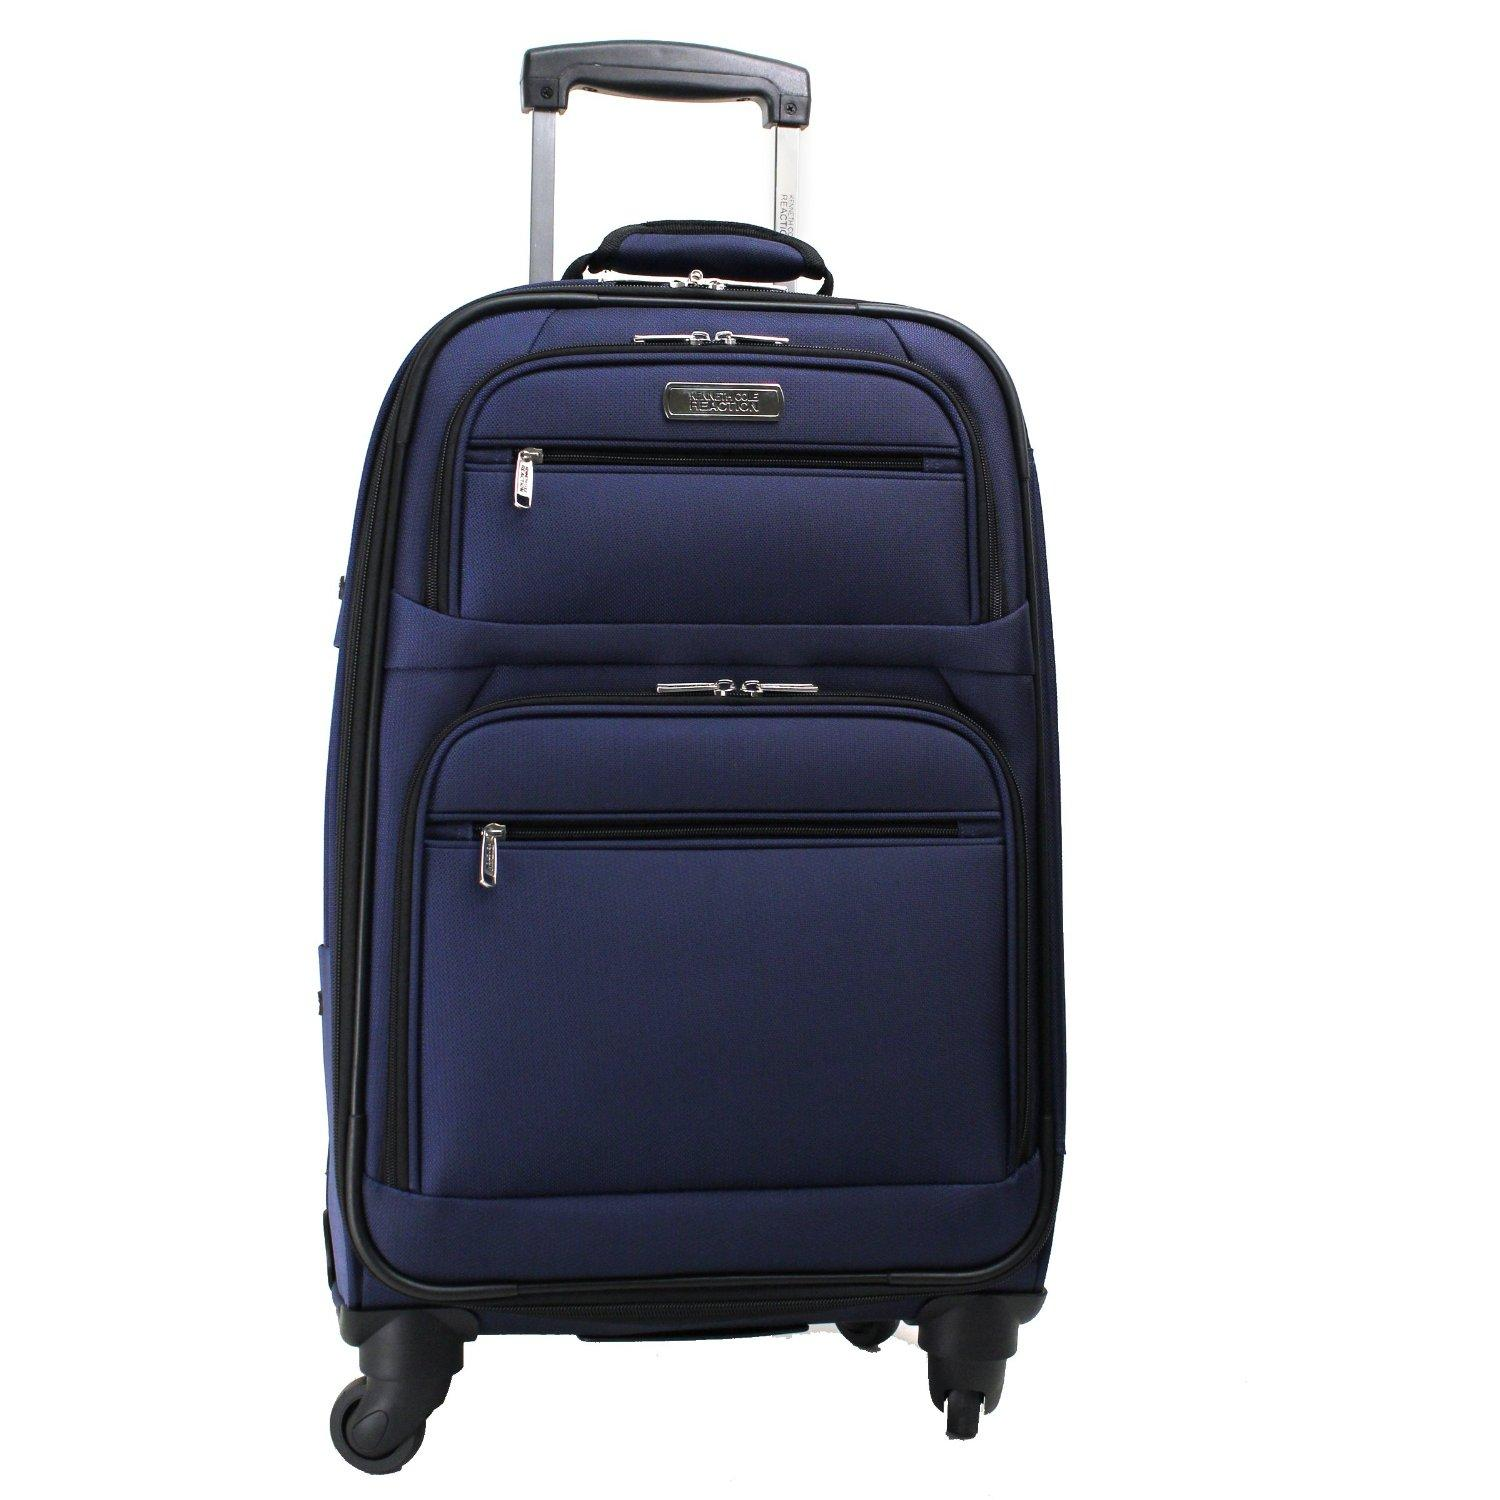 Kenneth cole reaction luggage uk prices